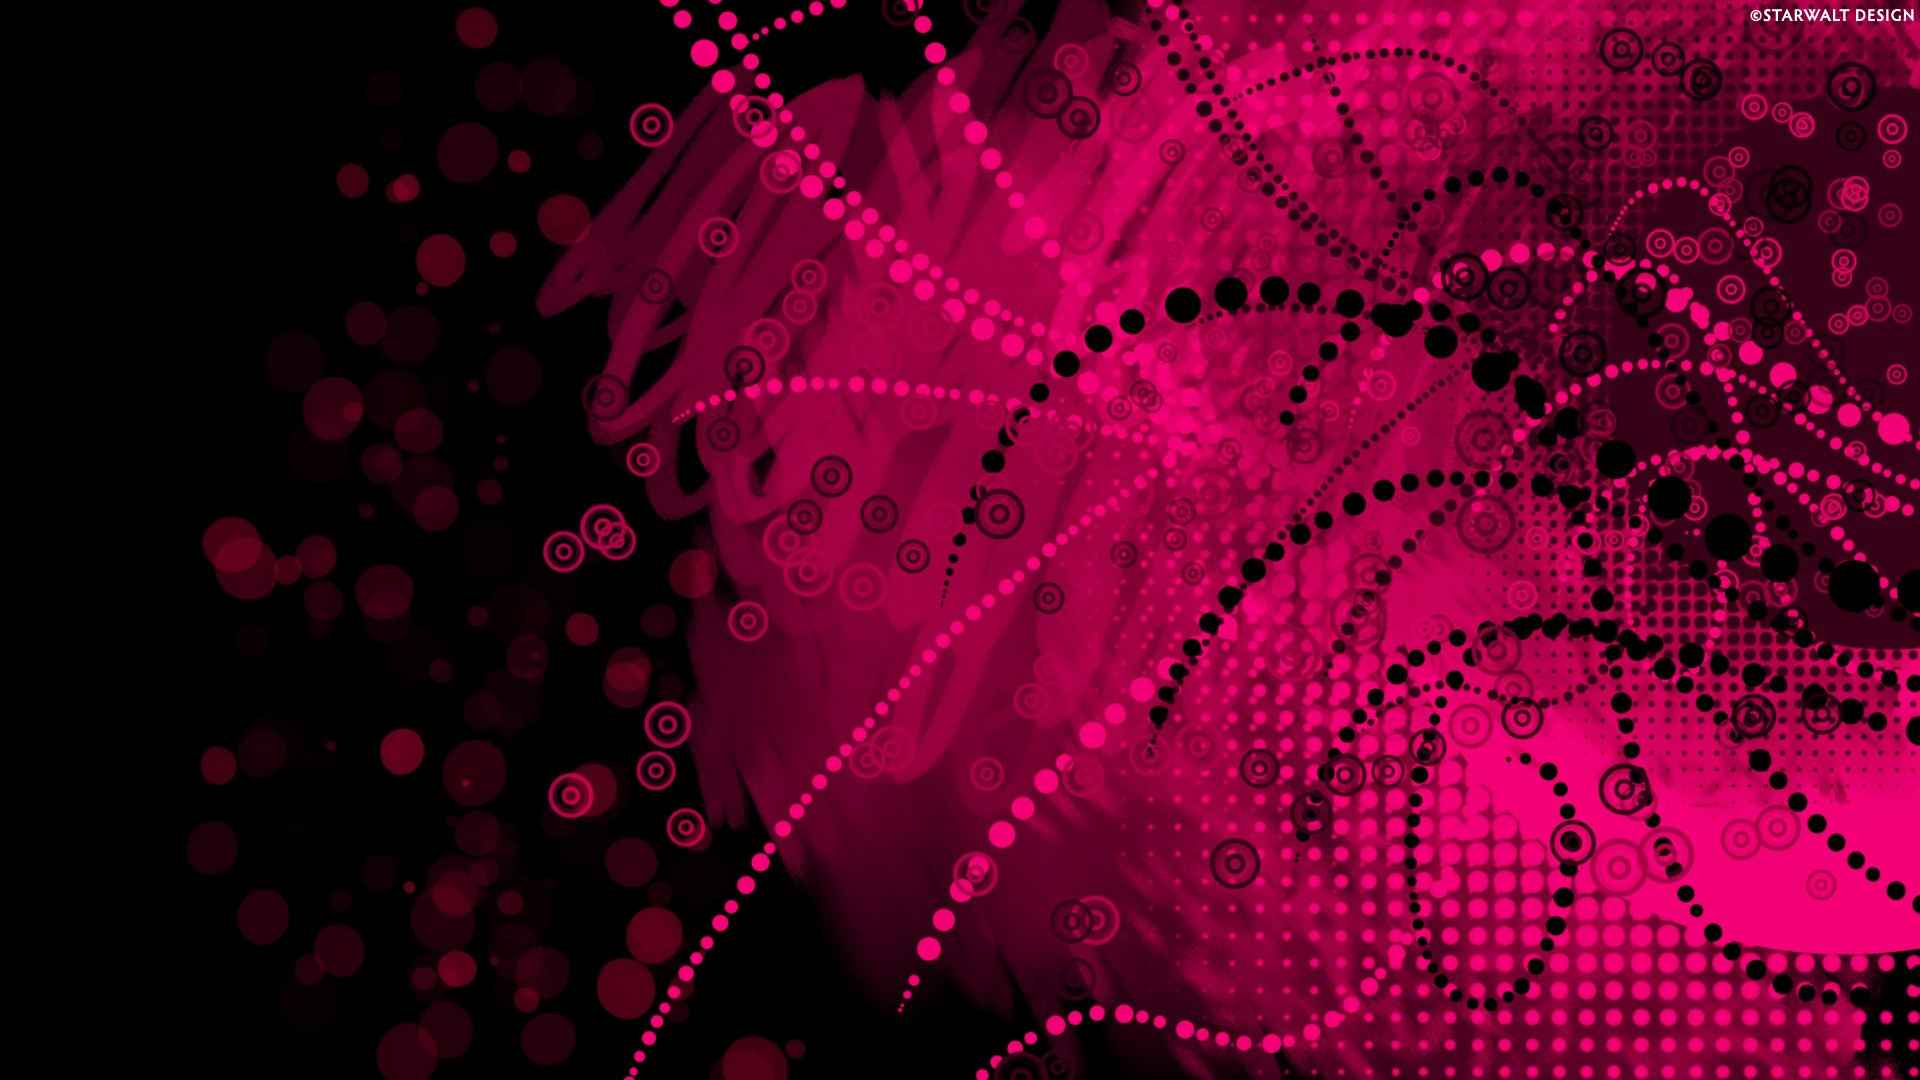 Pink Dark Vector 1080p Wallpapers HD Wallpapers 1920x1080